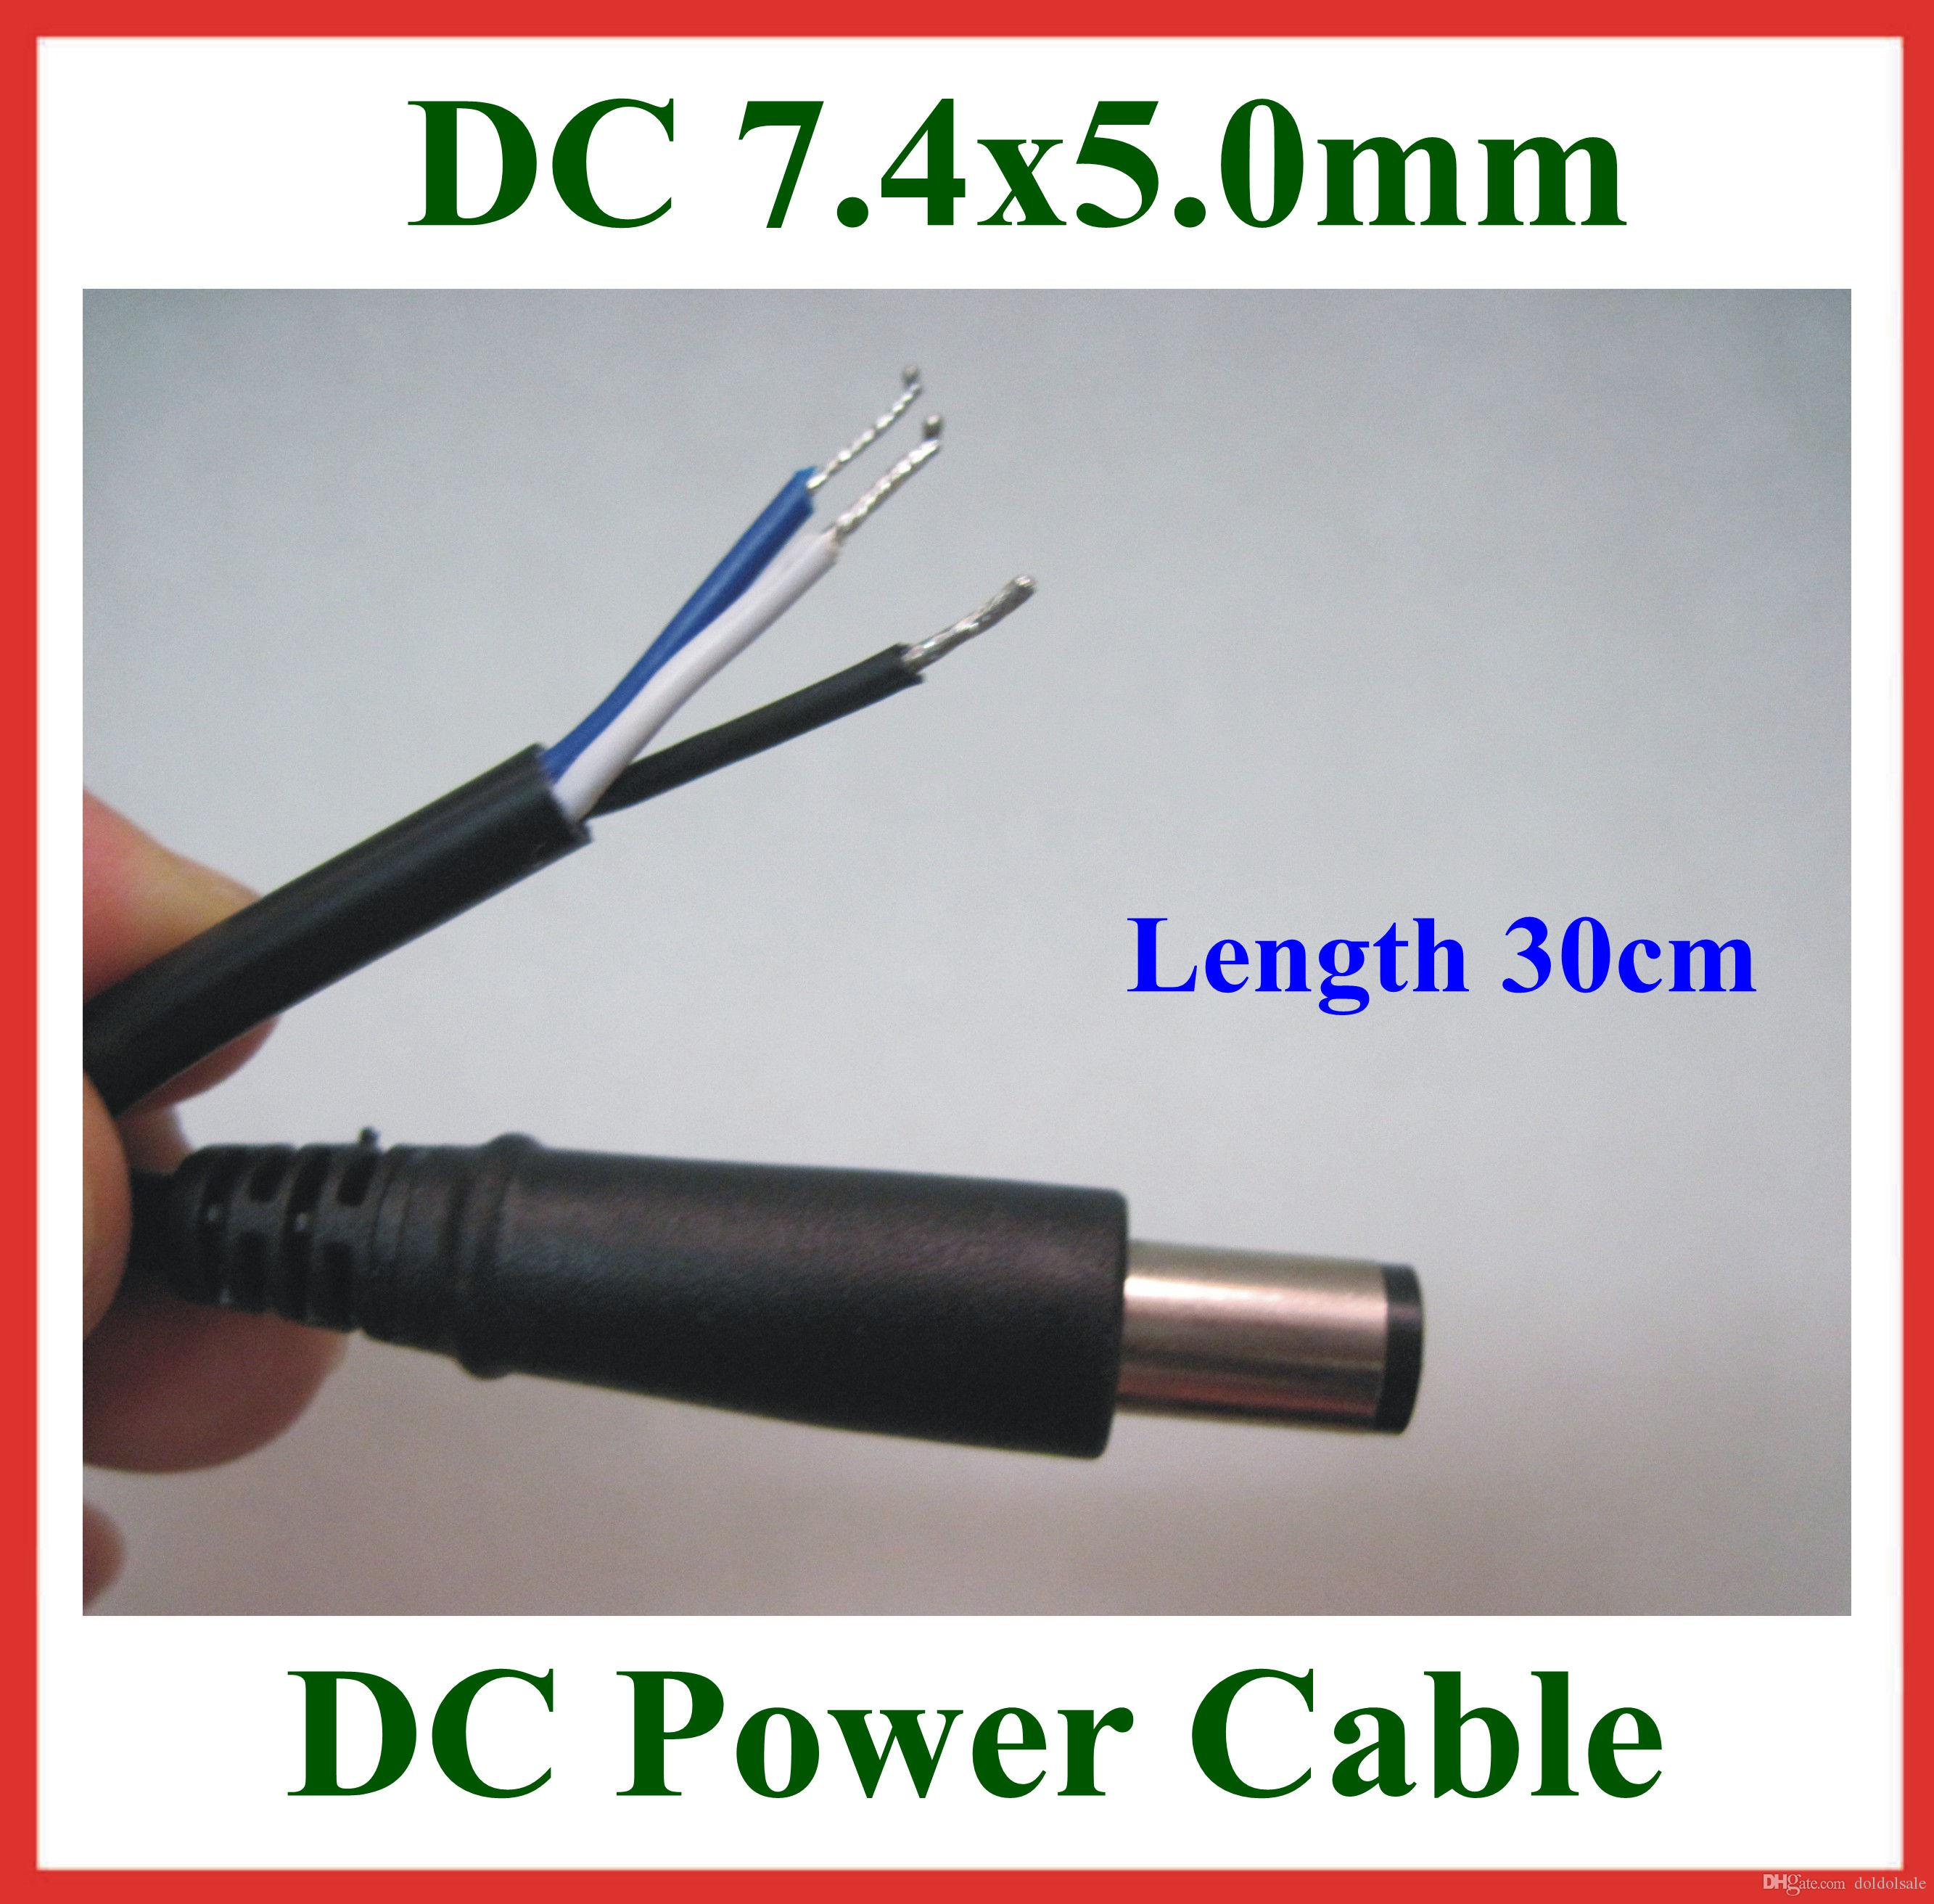 2018 Dc Tip Plug 7.4*5.0mm / 7.4x5.0mm Dc Power Supply Cable With ...